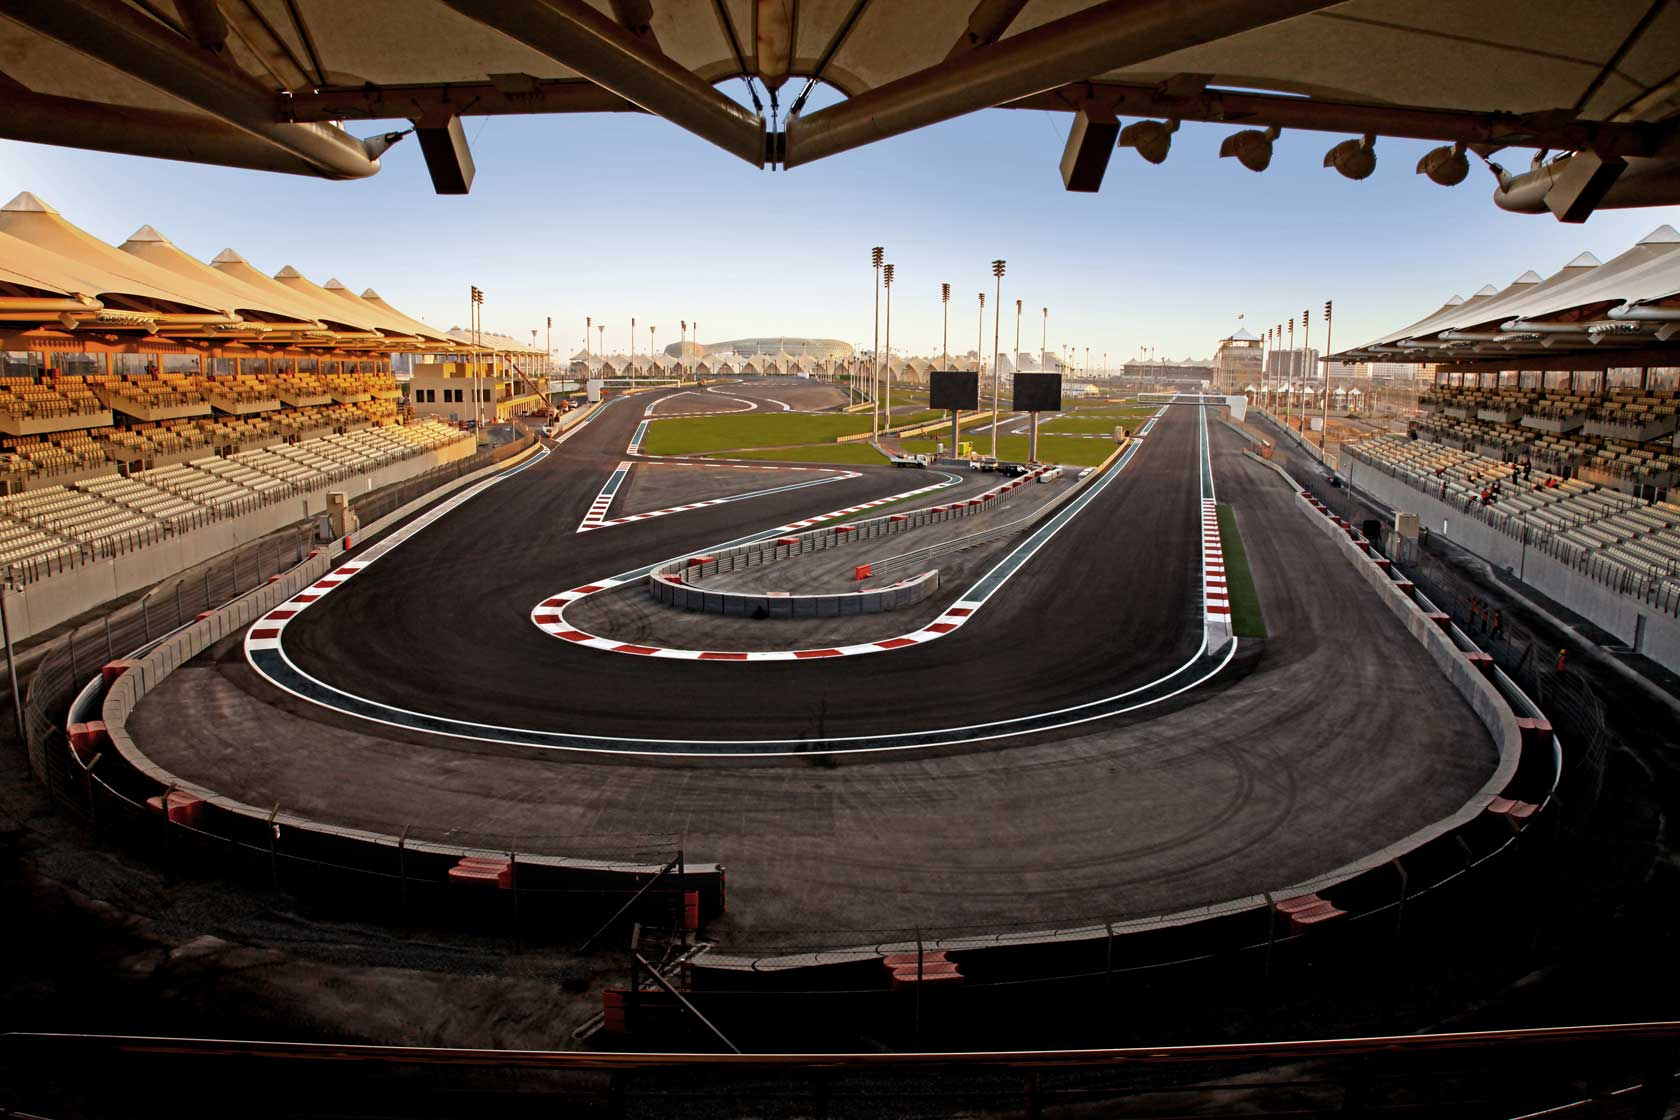 3 3 Racing Tracks To Set Your Own Speed Record!